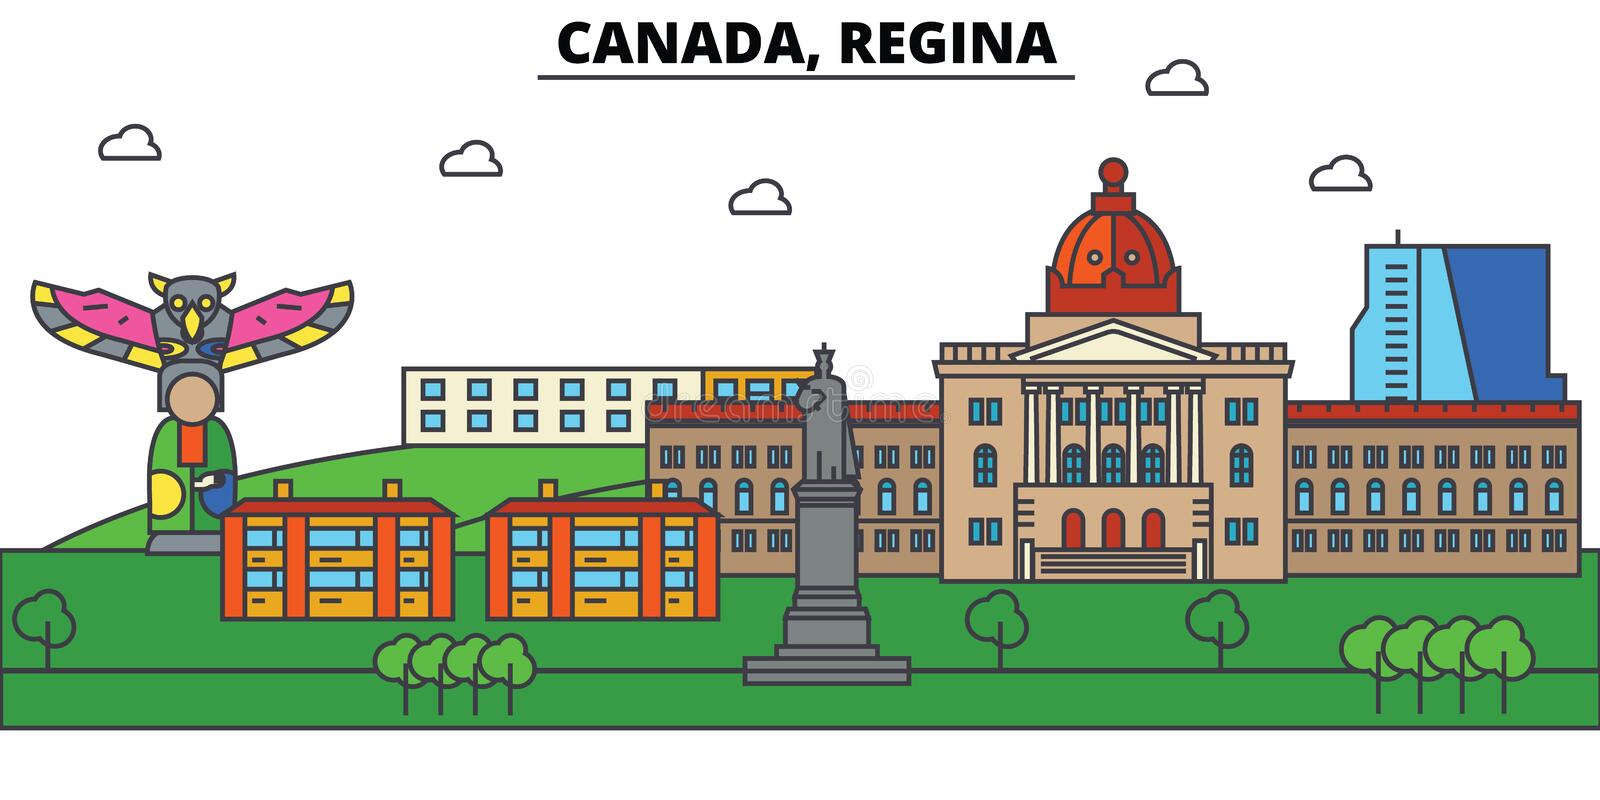 Canada, Regina De architectuur Editable van de stadshorizon stock illustratie